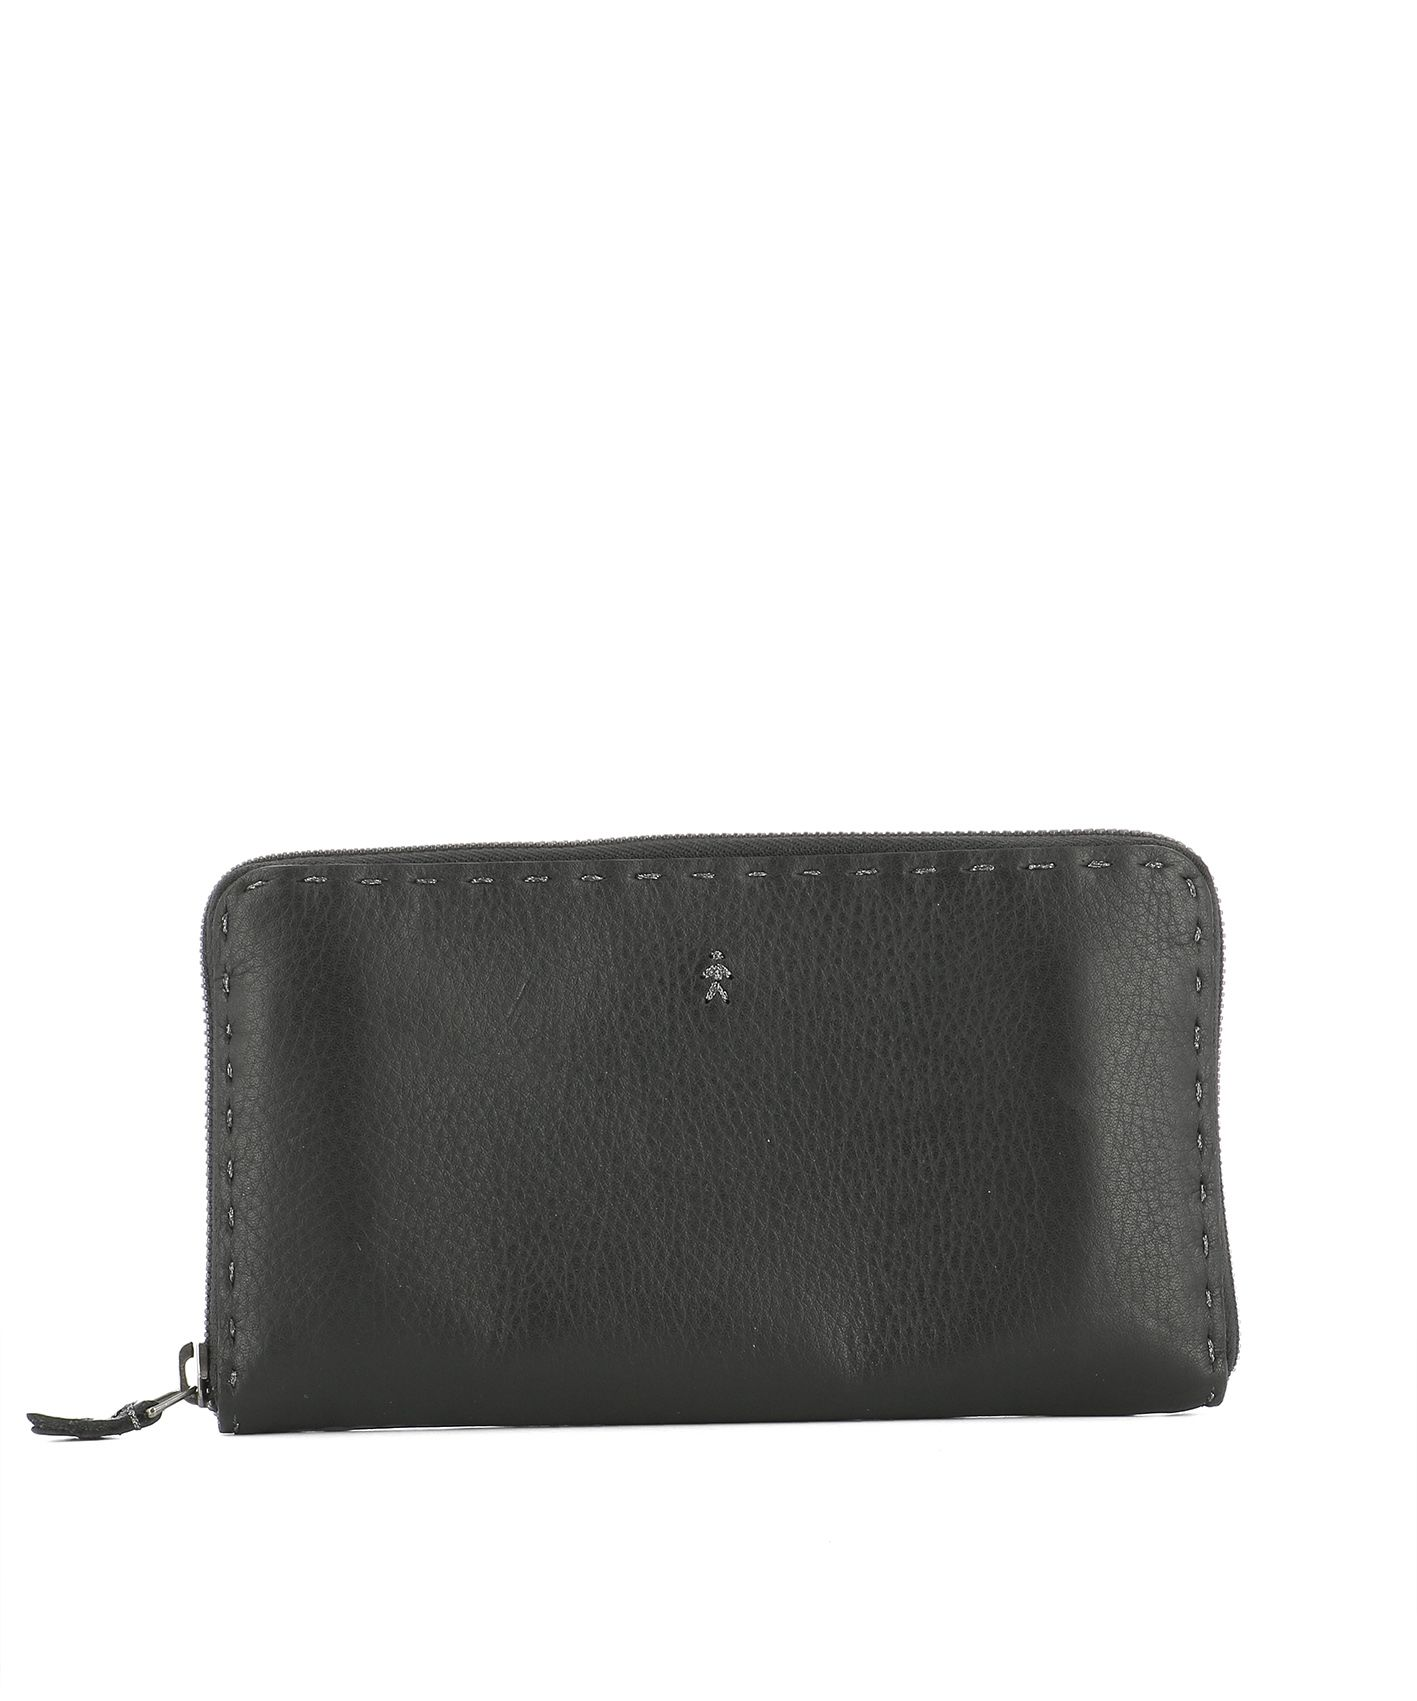 henry beguelin black leather wallet black womens